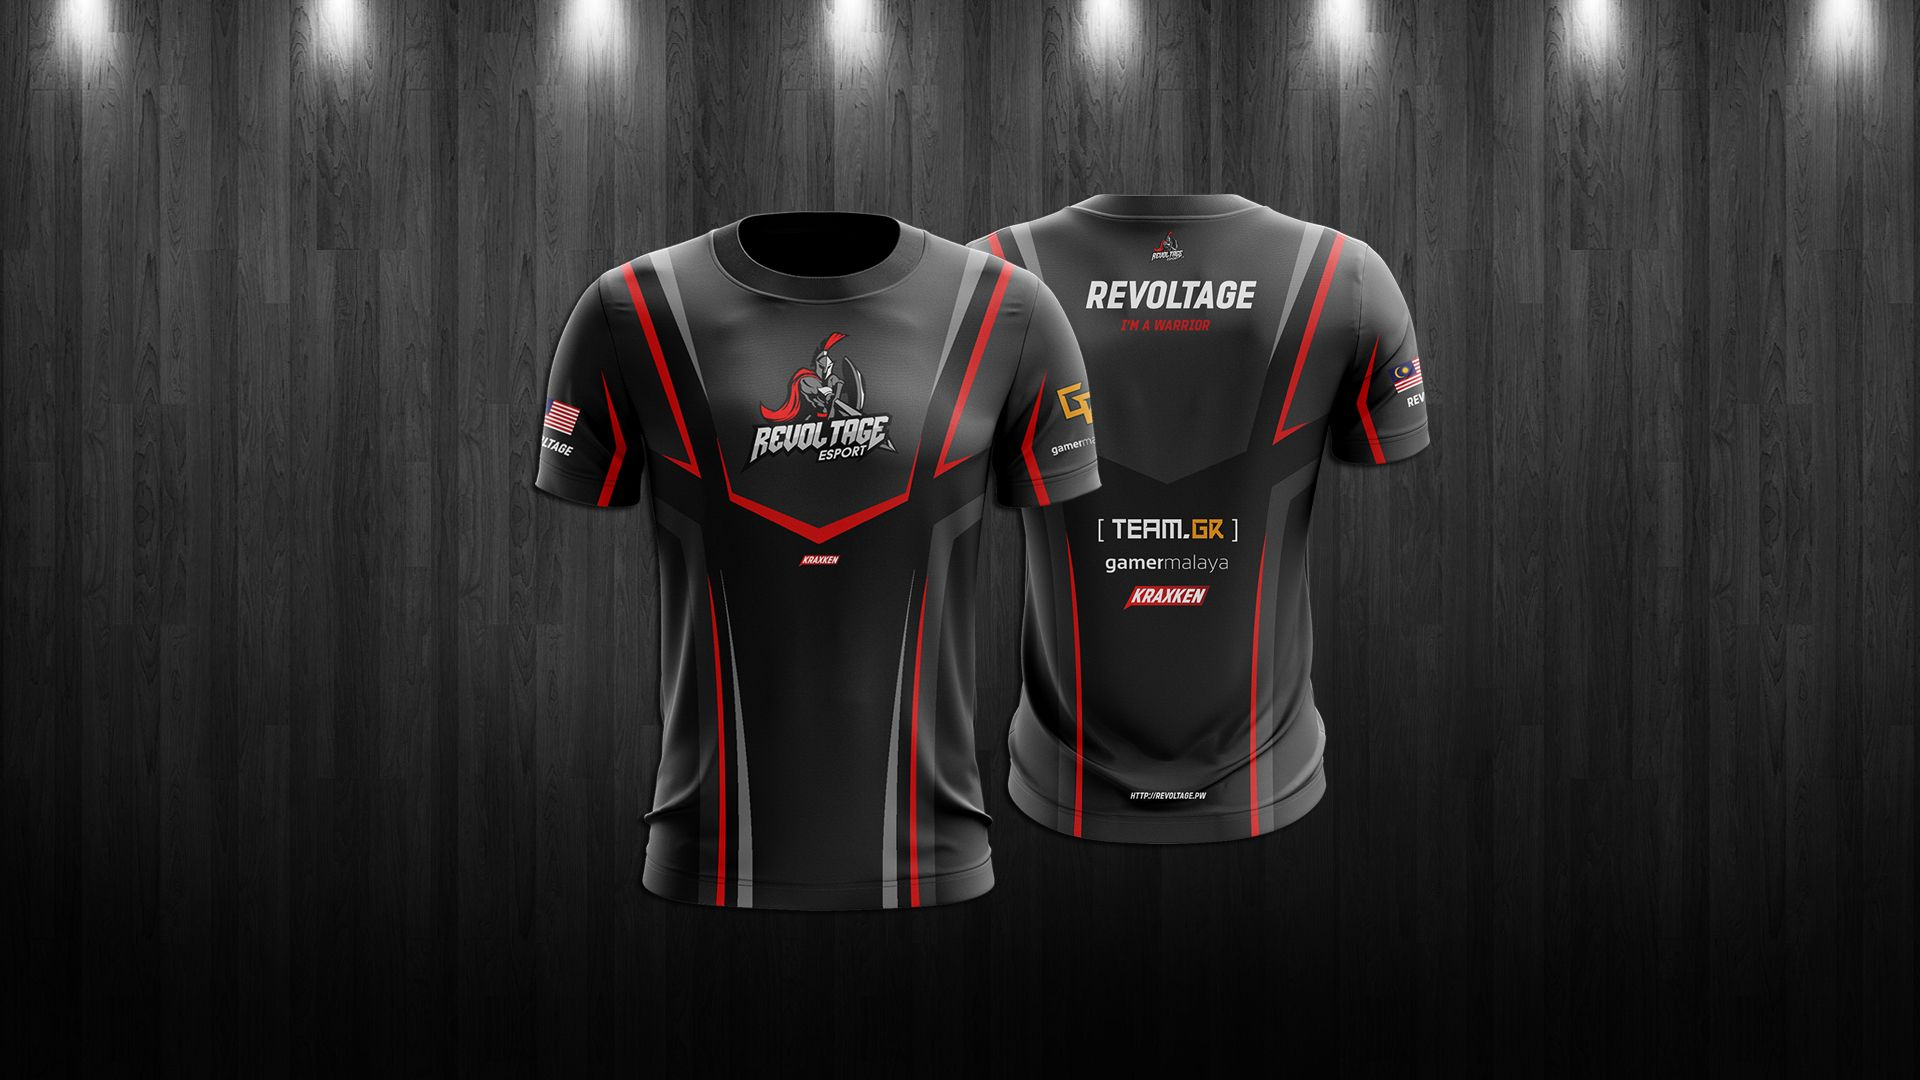 Download Pin By Ryuzu On Esport Jersey Soccer Outfits Gaming Clothes Jersey Design